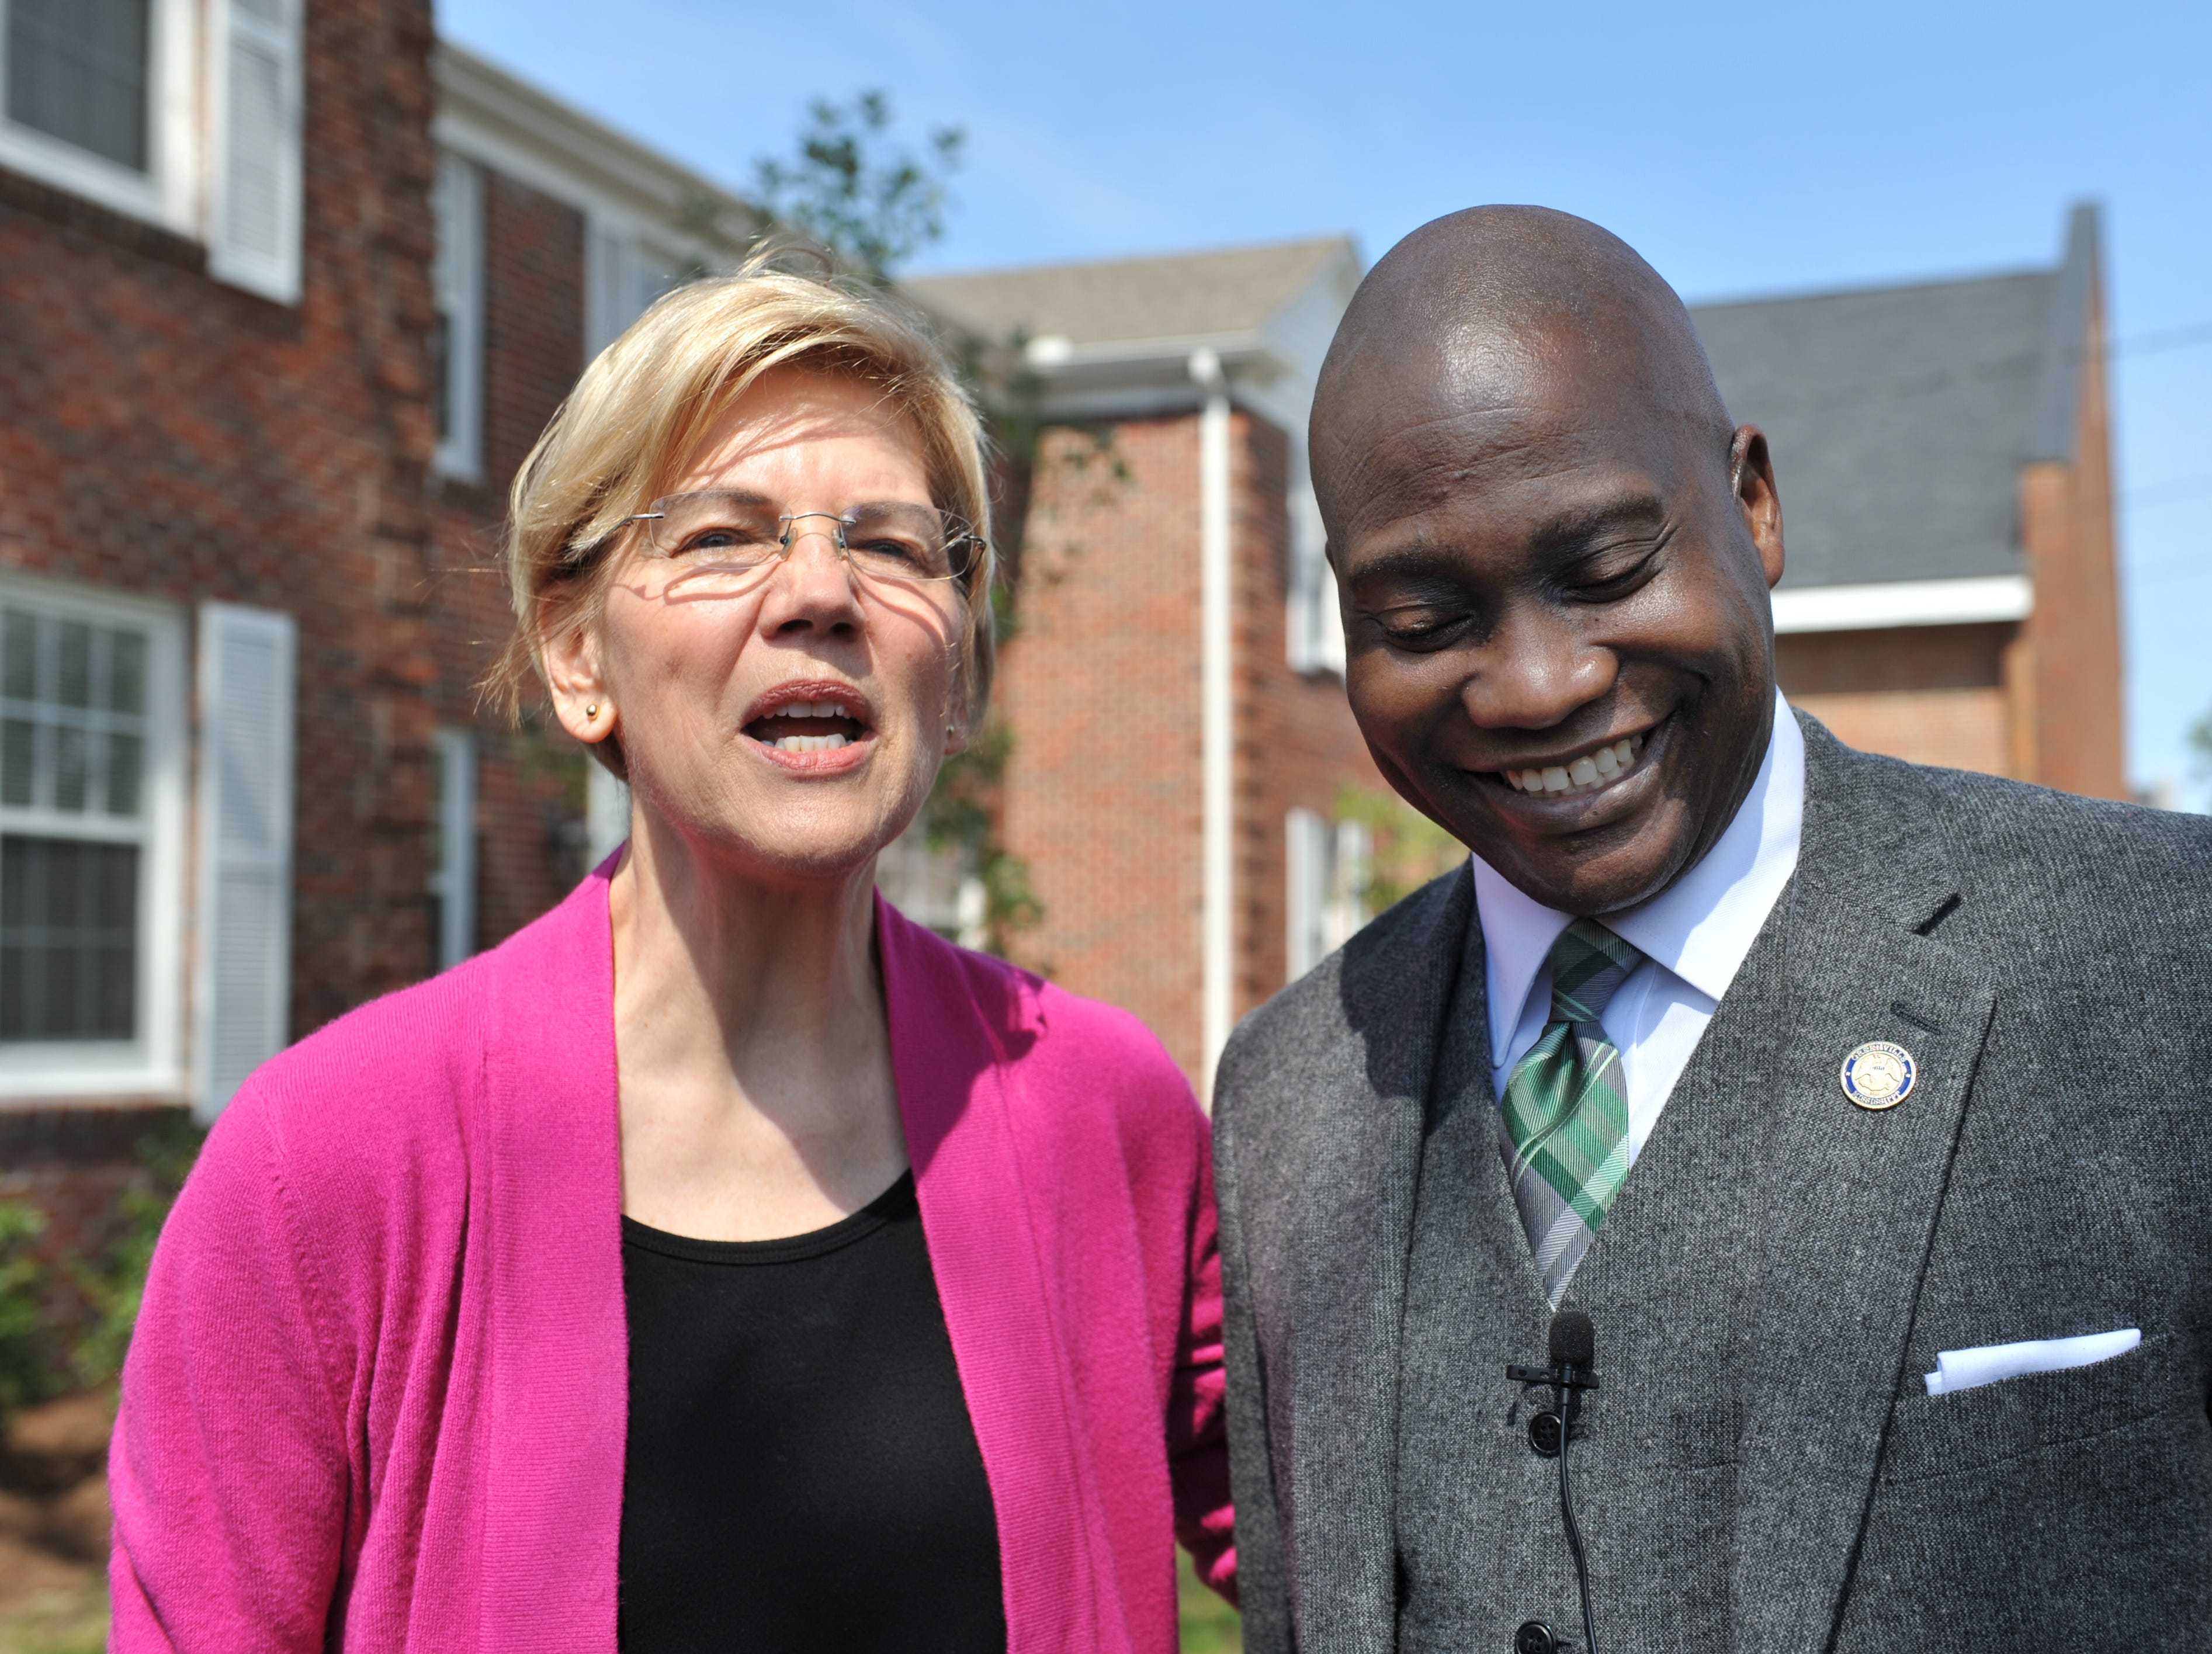 Presidential candidate Sen. Elizabeth Warren, D-Mass., and Greenville Mayor Erick Simmons address media, Monday, March 18, 2019, following a walking tour of Central Street followed by a discussion with members of the Greater Greenville Housing & Revitalization Association. While in Greenville, Warren promoted her affordable housing bill she has rolled out as part of her 2020 campaign for presidency.